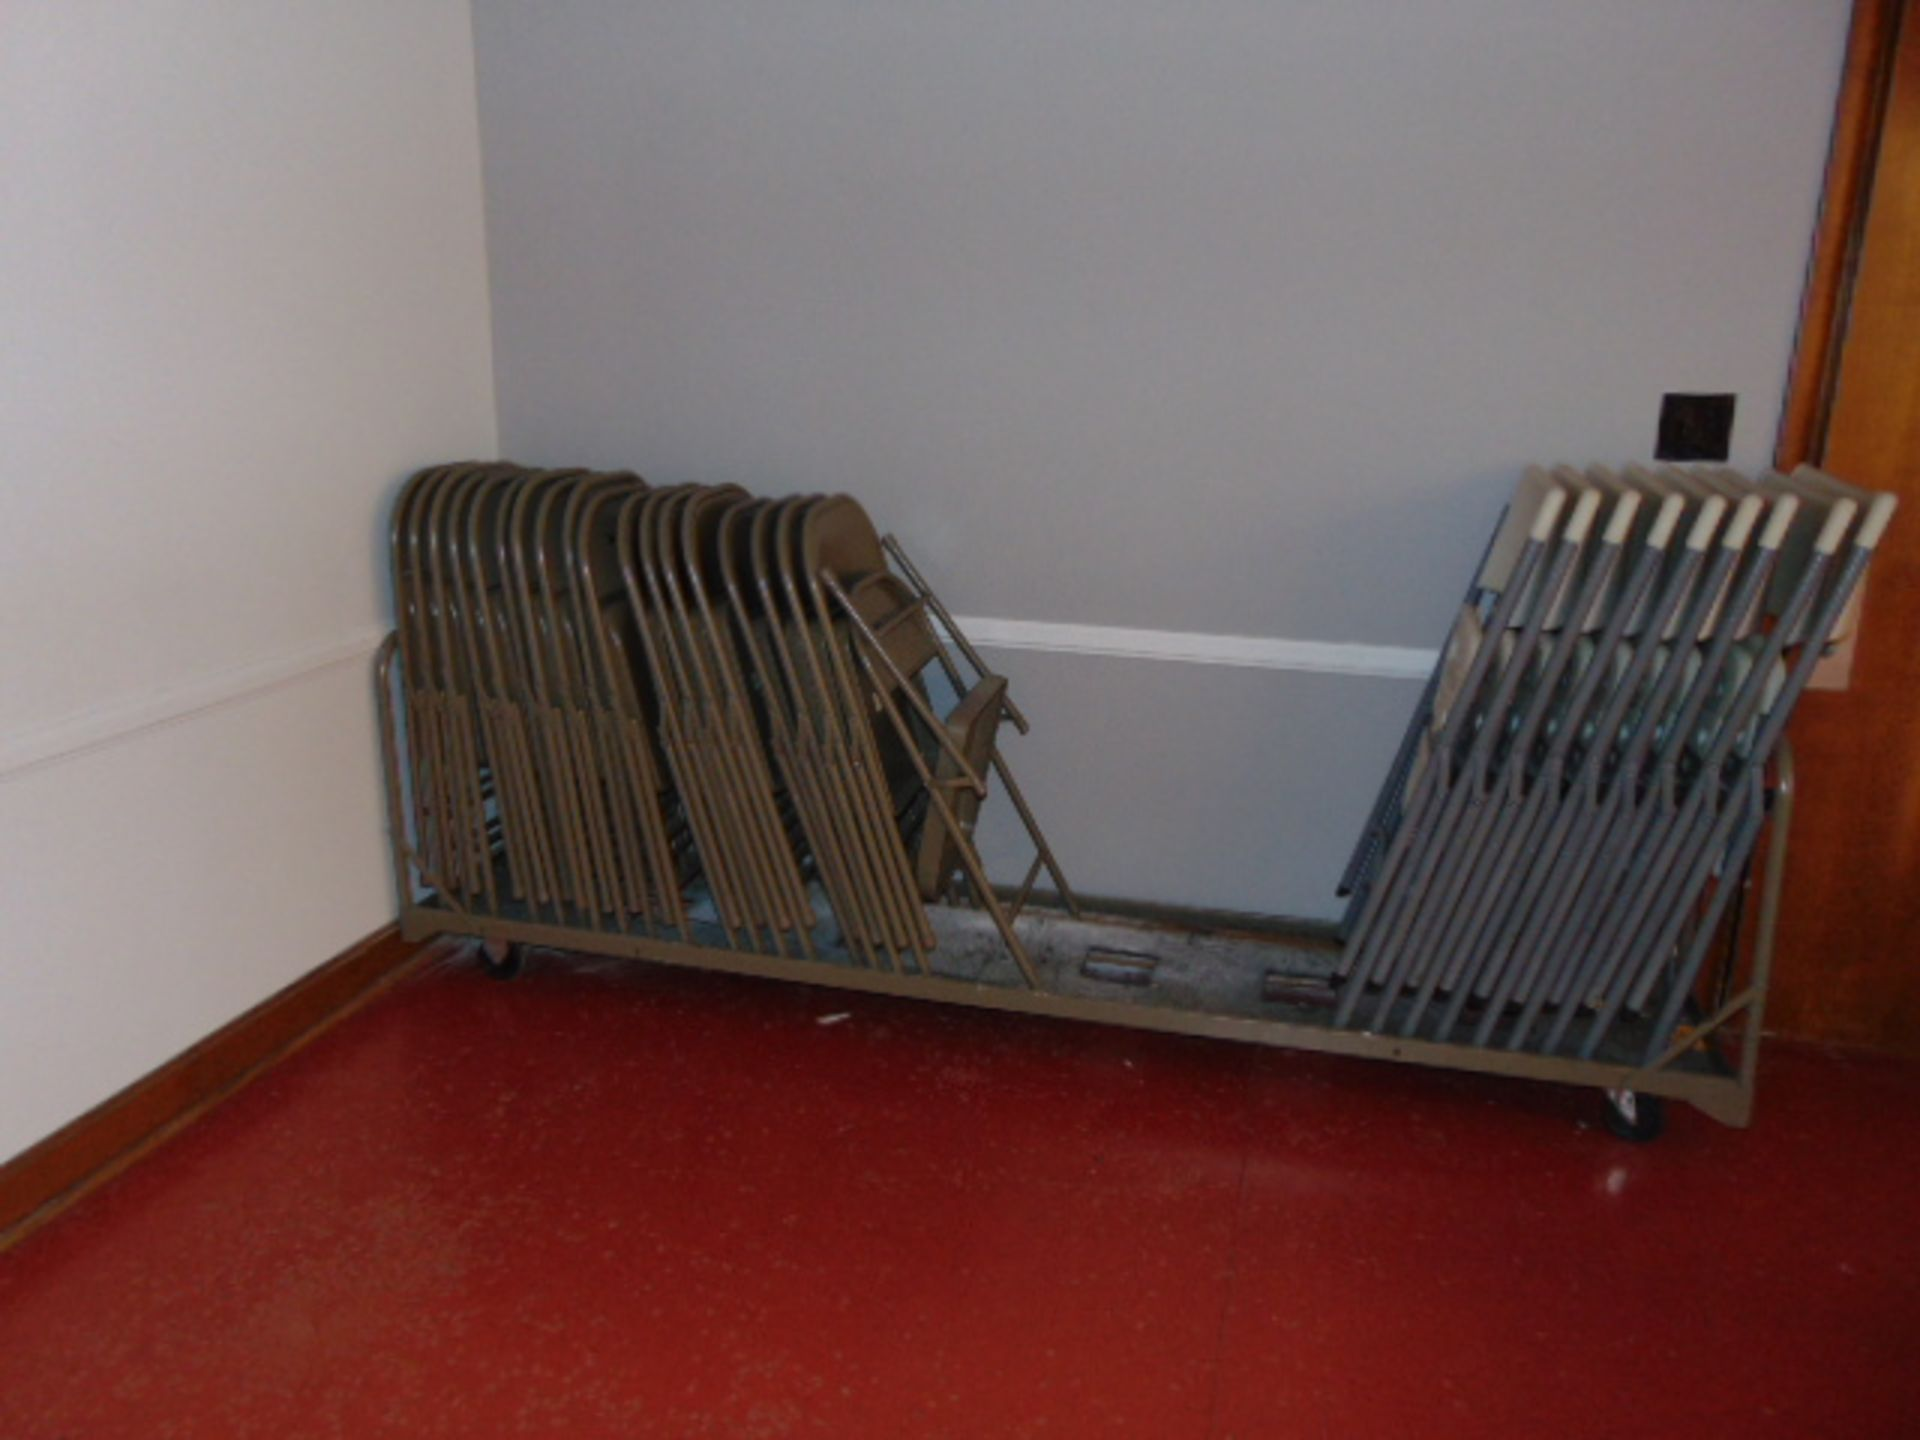 Lot 534 - LOT CONSISTING OF: (3) folding leg tables, folding chairs, storage carts